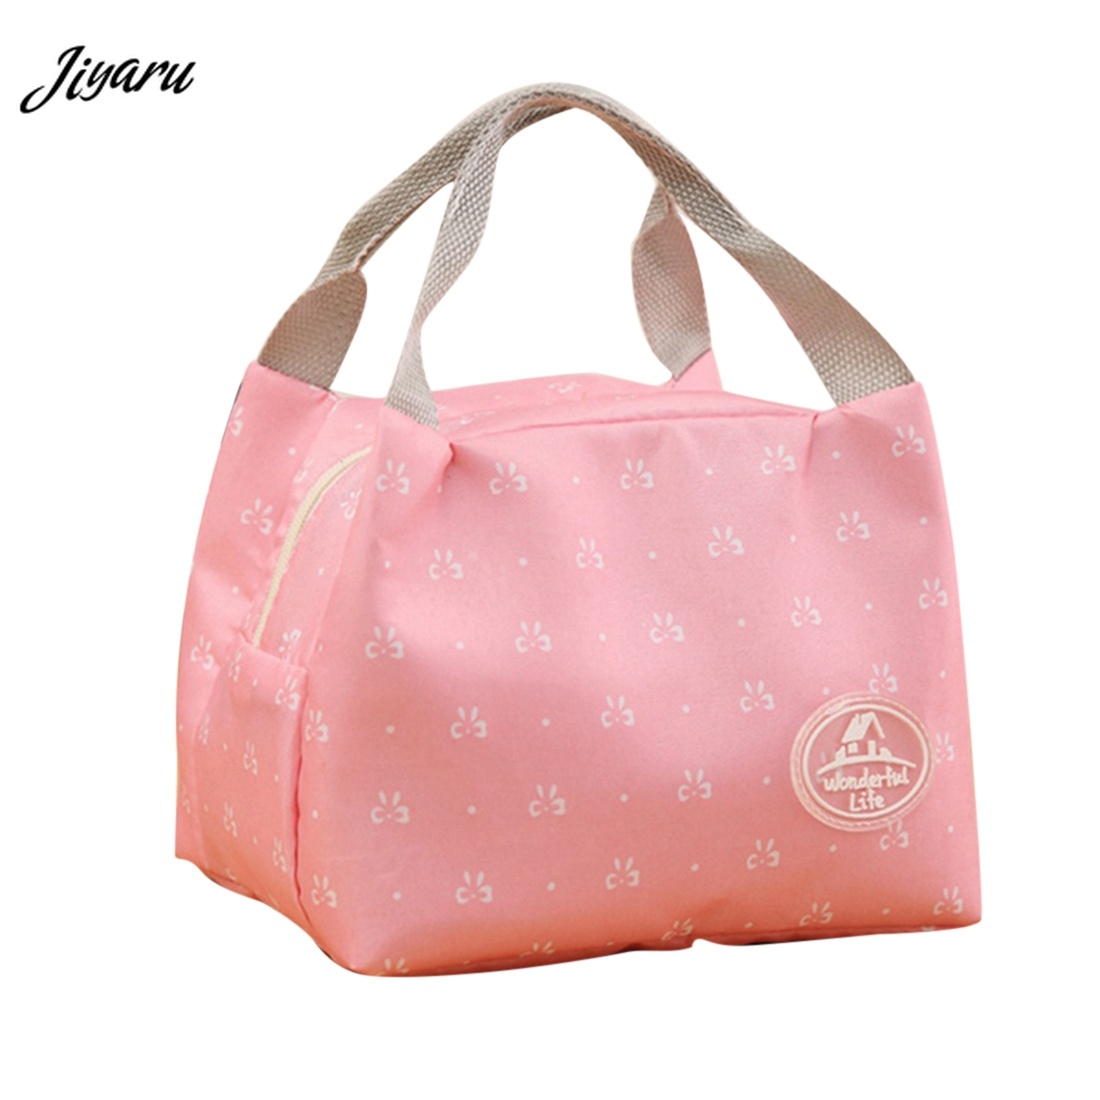 Hot Sale Lunch Bag Portable Insulated Lunch Bag Kids Snack Lunch Box Carry Tote Storage Cooler Picnic Food Pouch for WomenHot Sale Lunch Bag Portable Insulated Lunch Bag Kids Snack Lunch Box Carry Tote Storage Cooler Picnic Food Pouch for Women